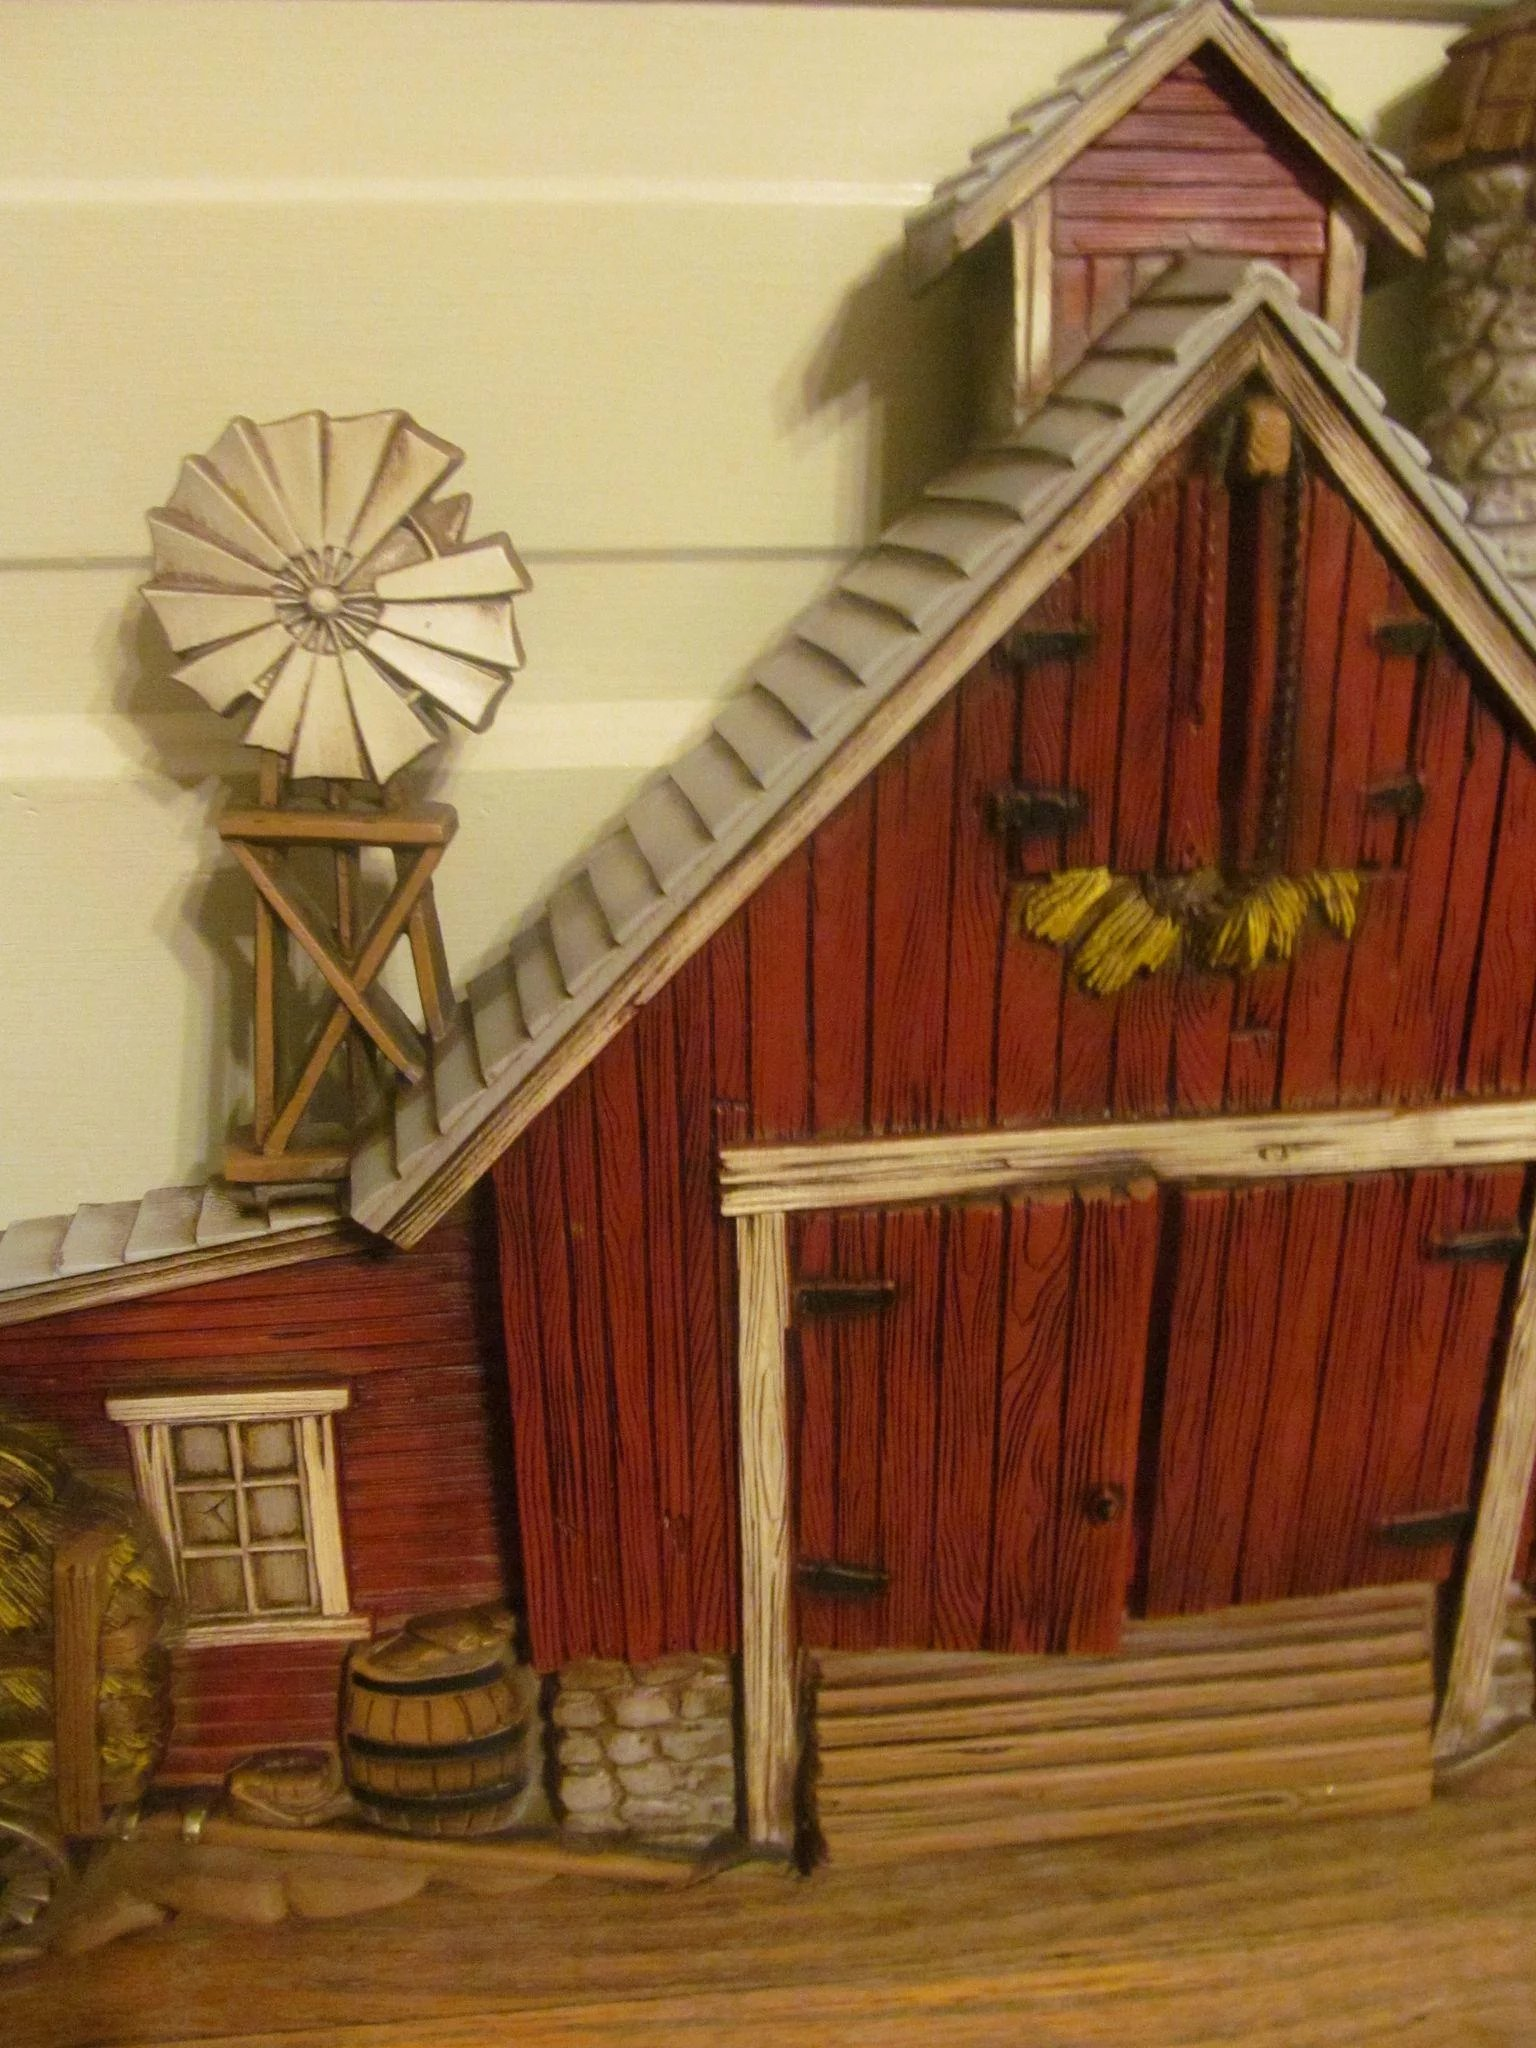 1974 Large Burwood Products 3 D Barn Wall Plaque Decor